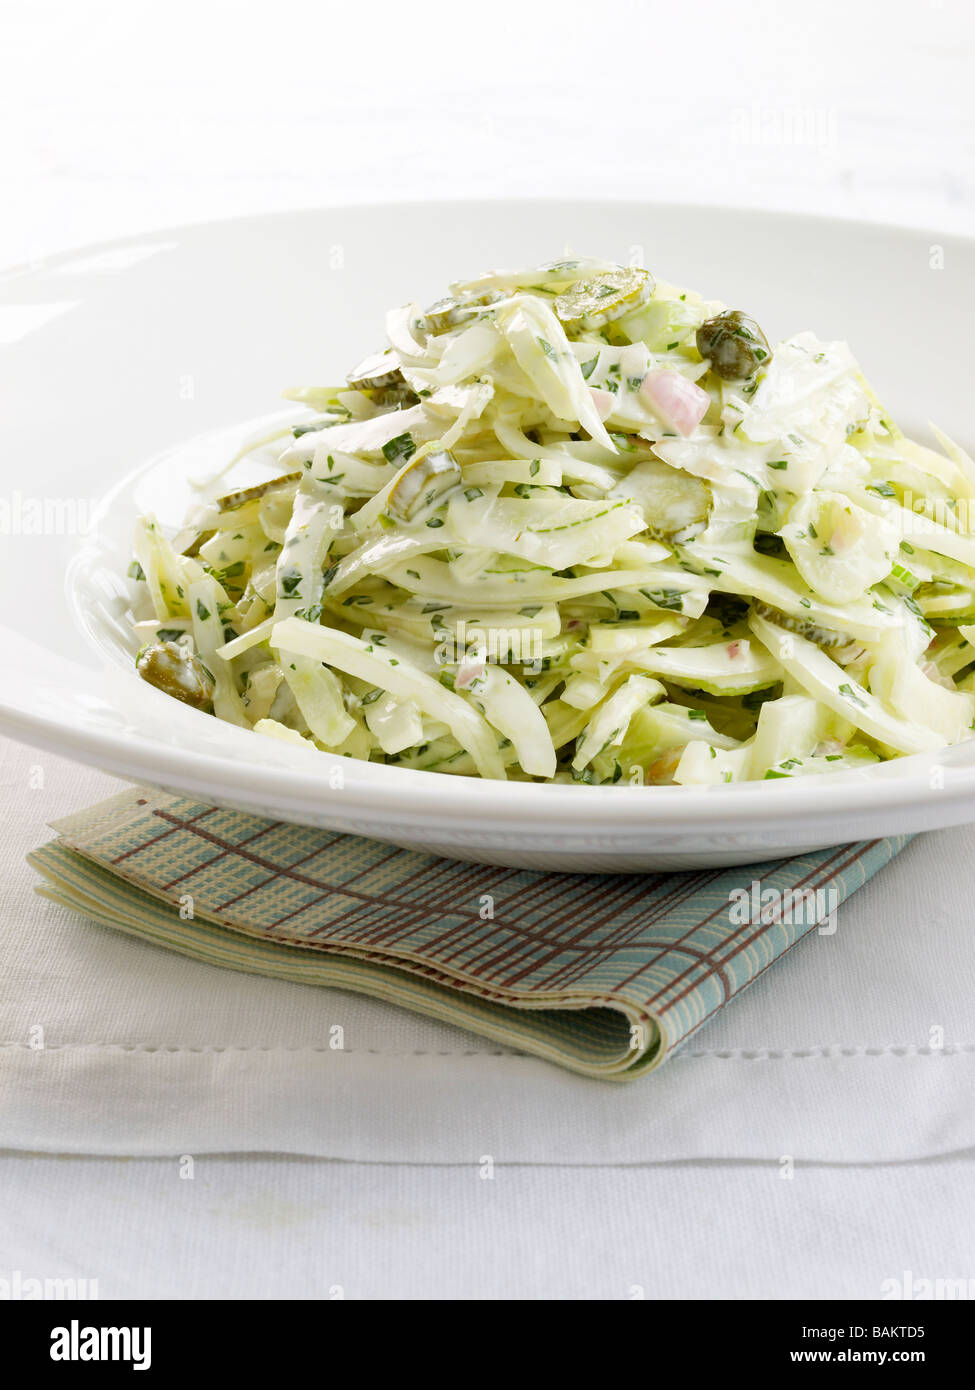 fennel remoulade with parsley, tarragon and capers - Stock Image